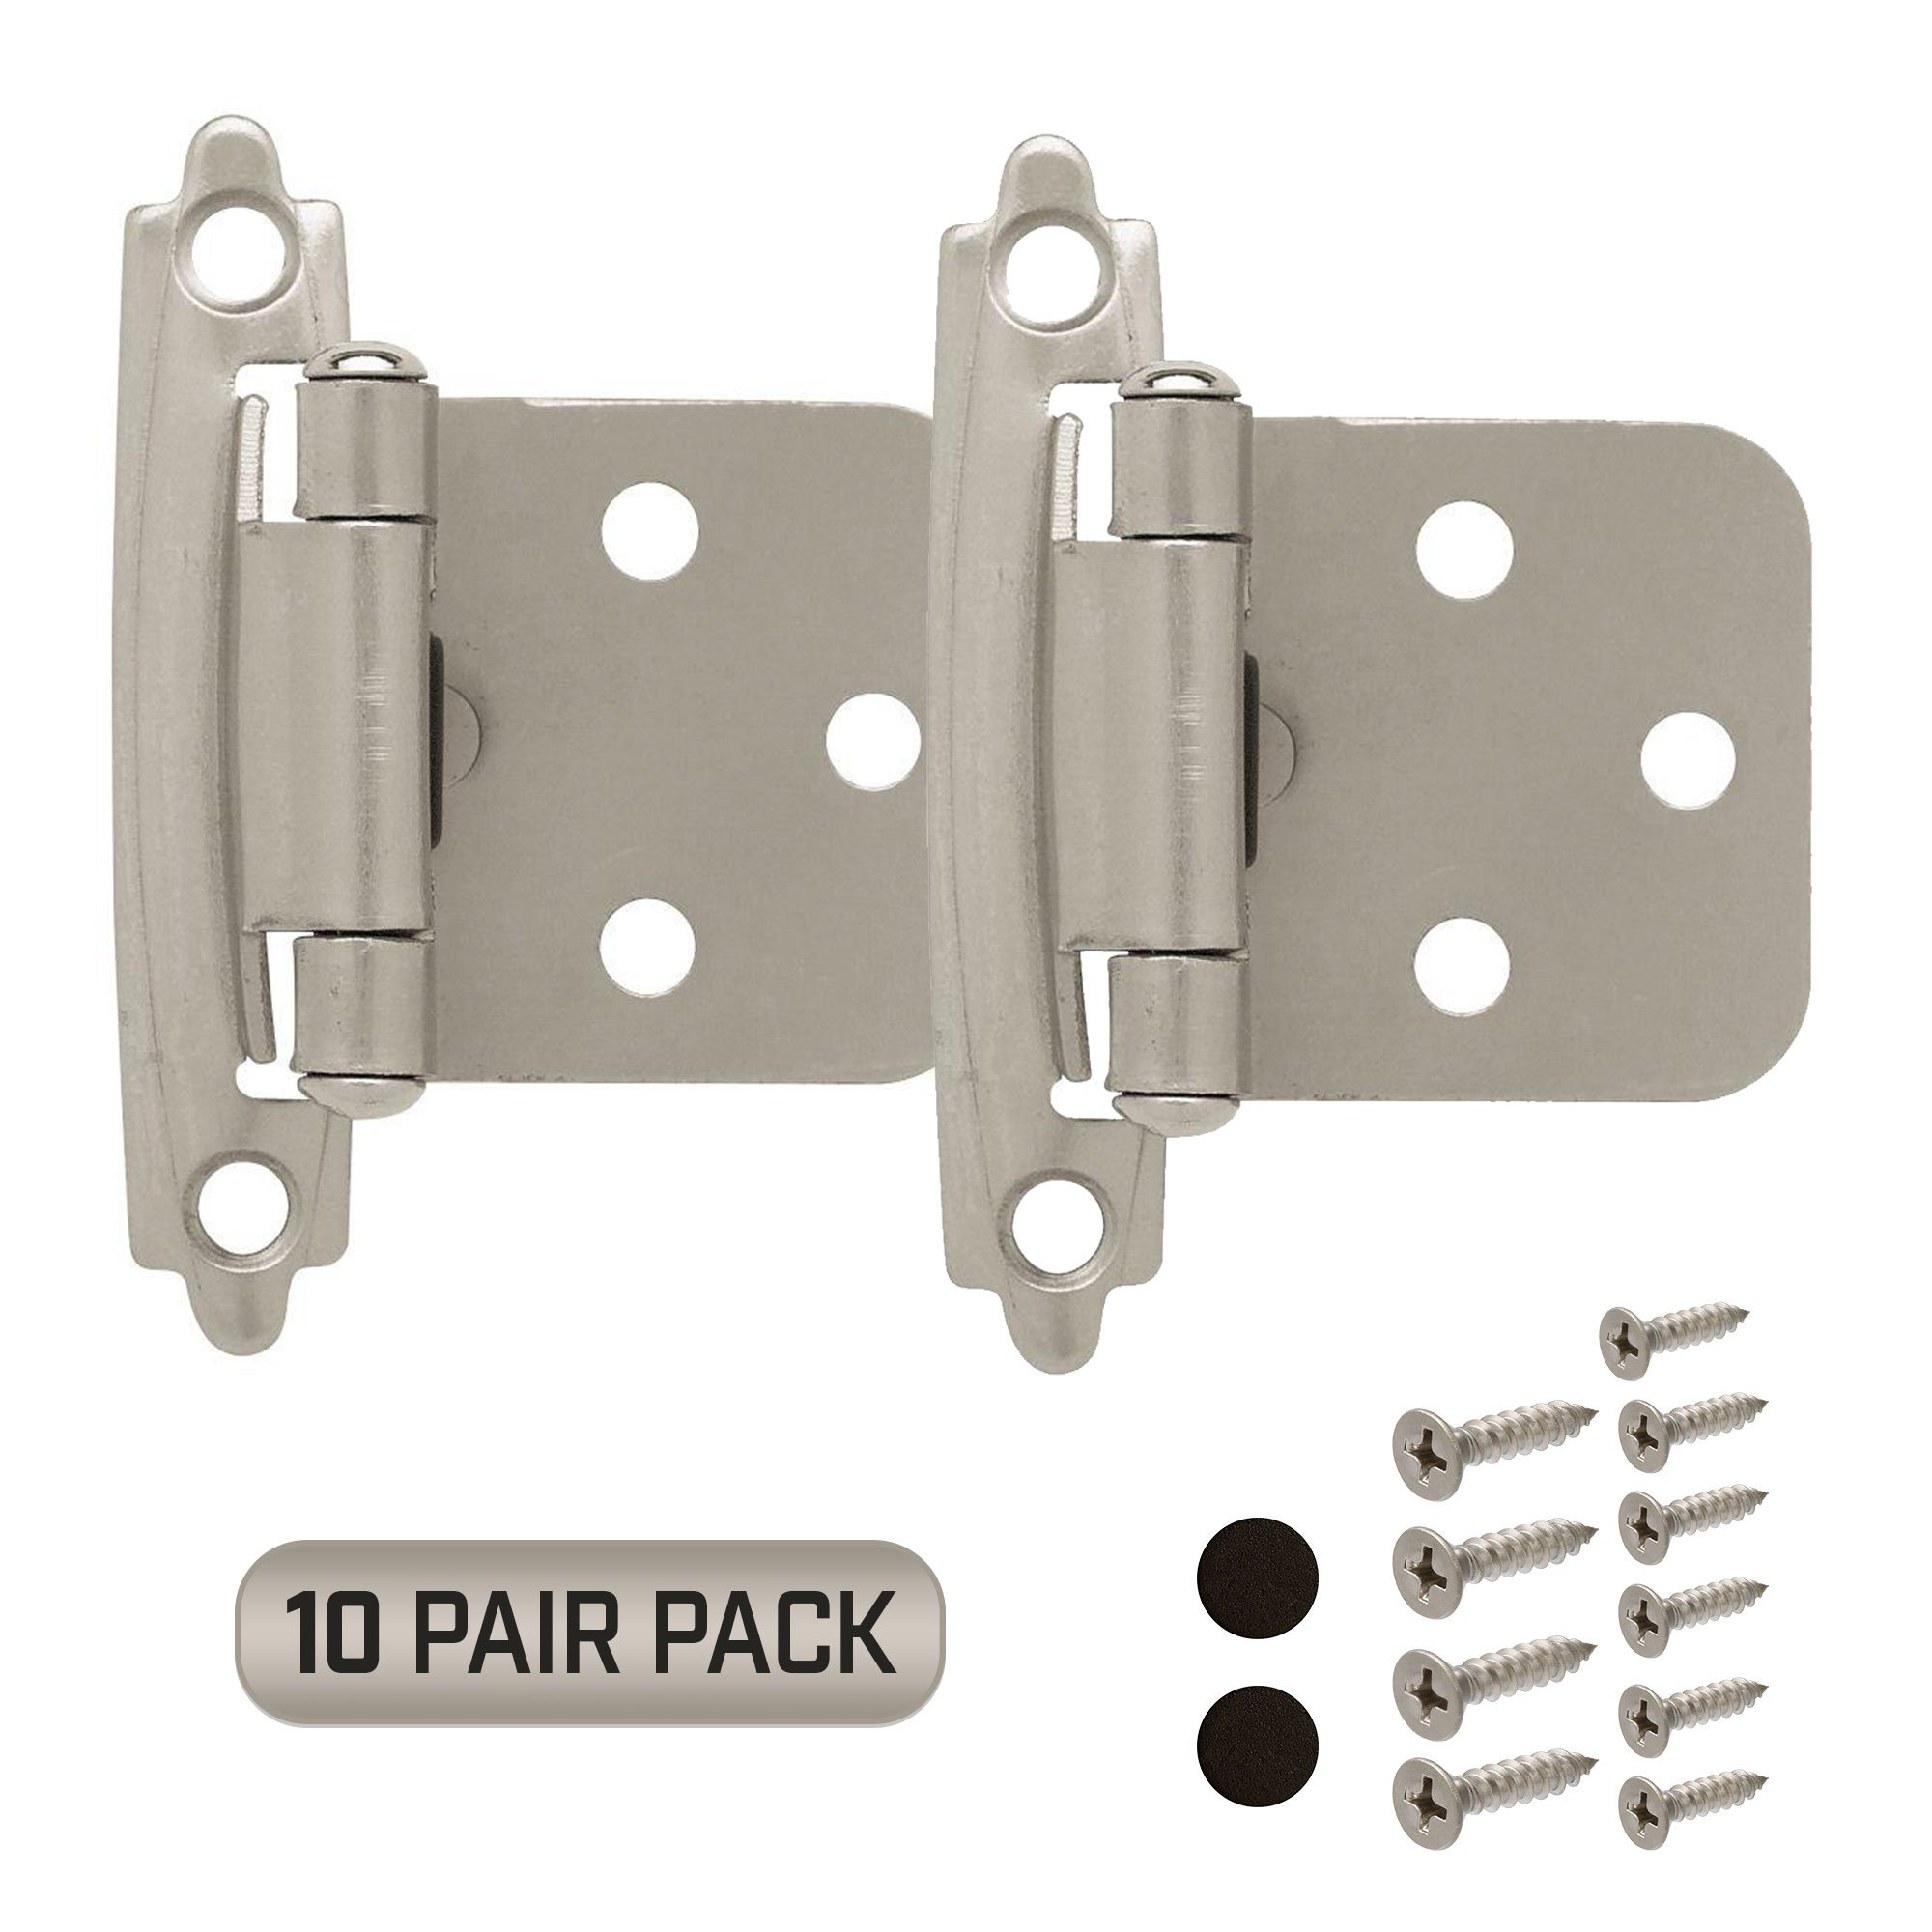 Cabinet Door Hinges 10 Pair Pack 20 Pieces Self Closing Face Mount Overlay